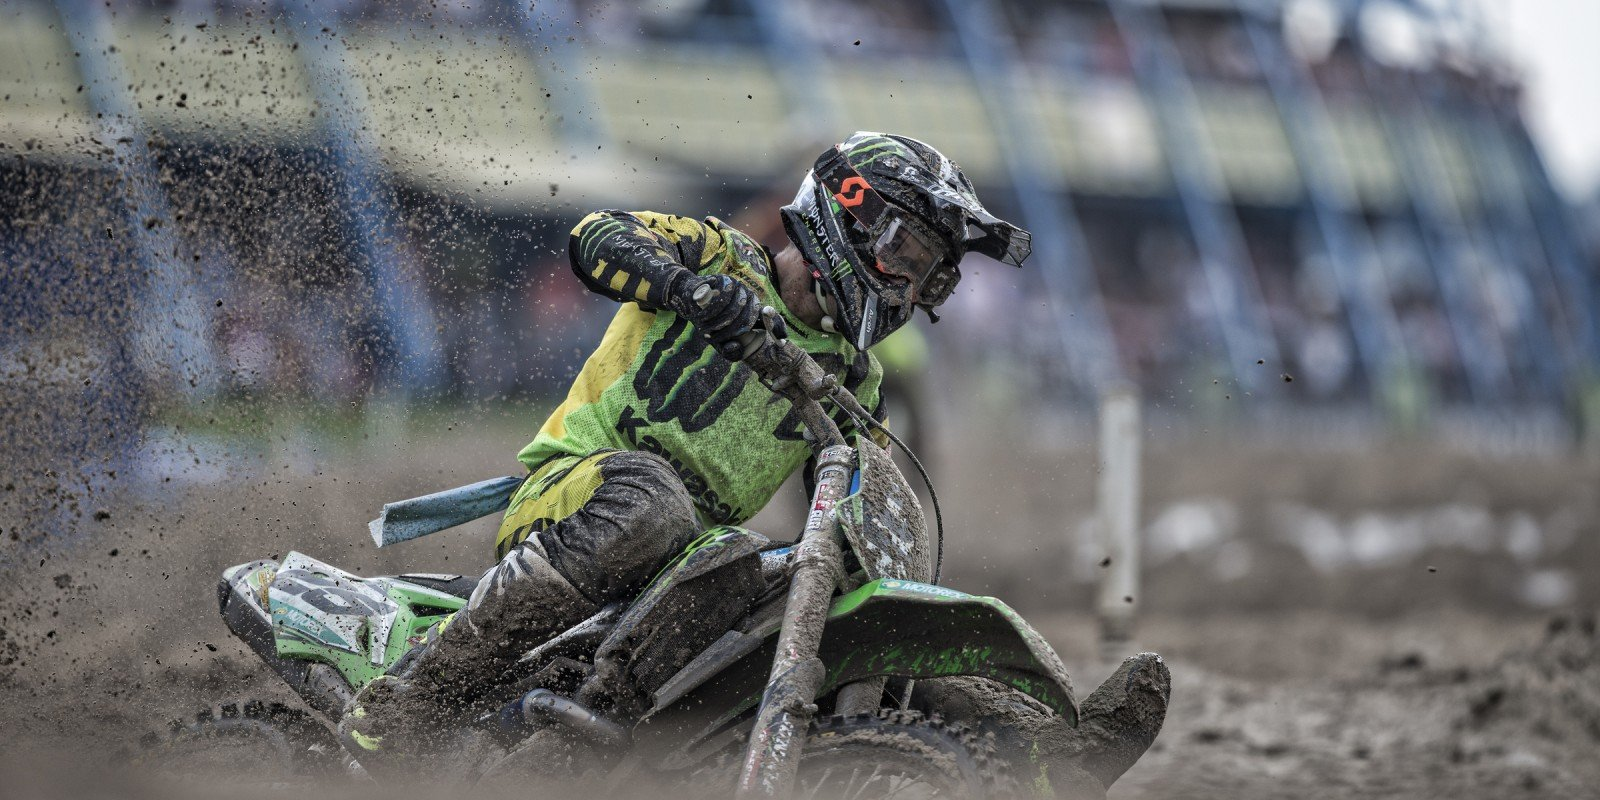 Clement Desalle at the 2016 MXGP of the Netherlands